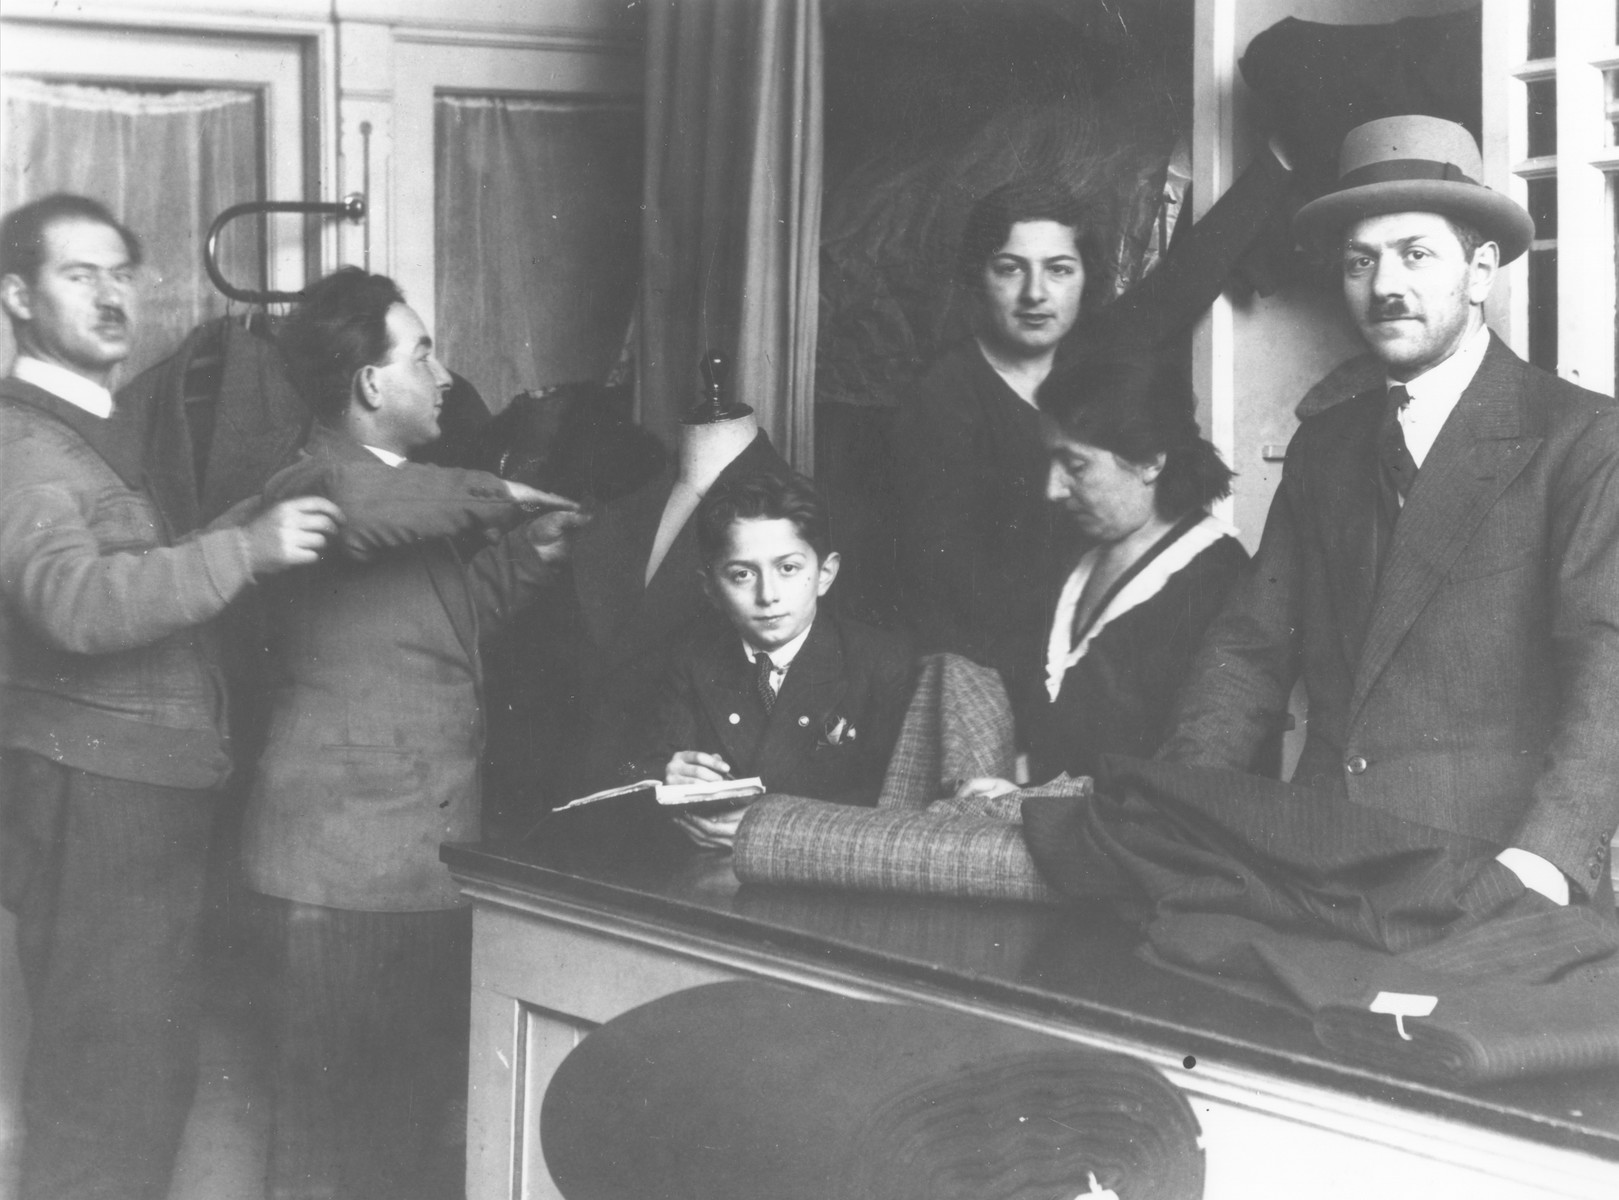 A Jewish family works in a tailor shop in Amsterdam.  Among those pictured is Yankel Nortman (far left), who had moved to Amsterdam from Warsaw in 1932.  He later perished during the Holocaust.